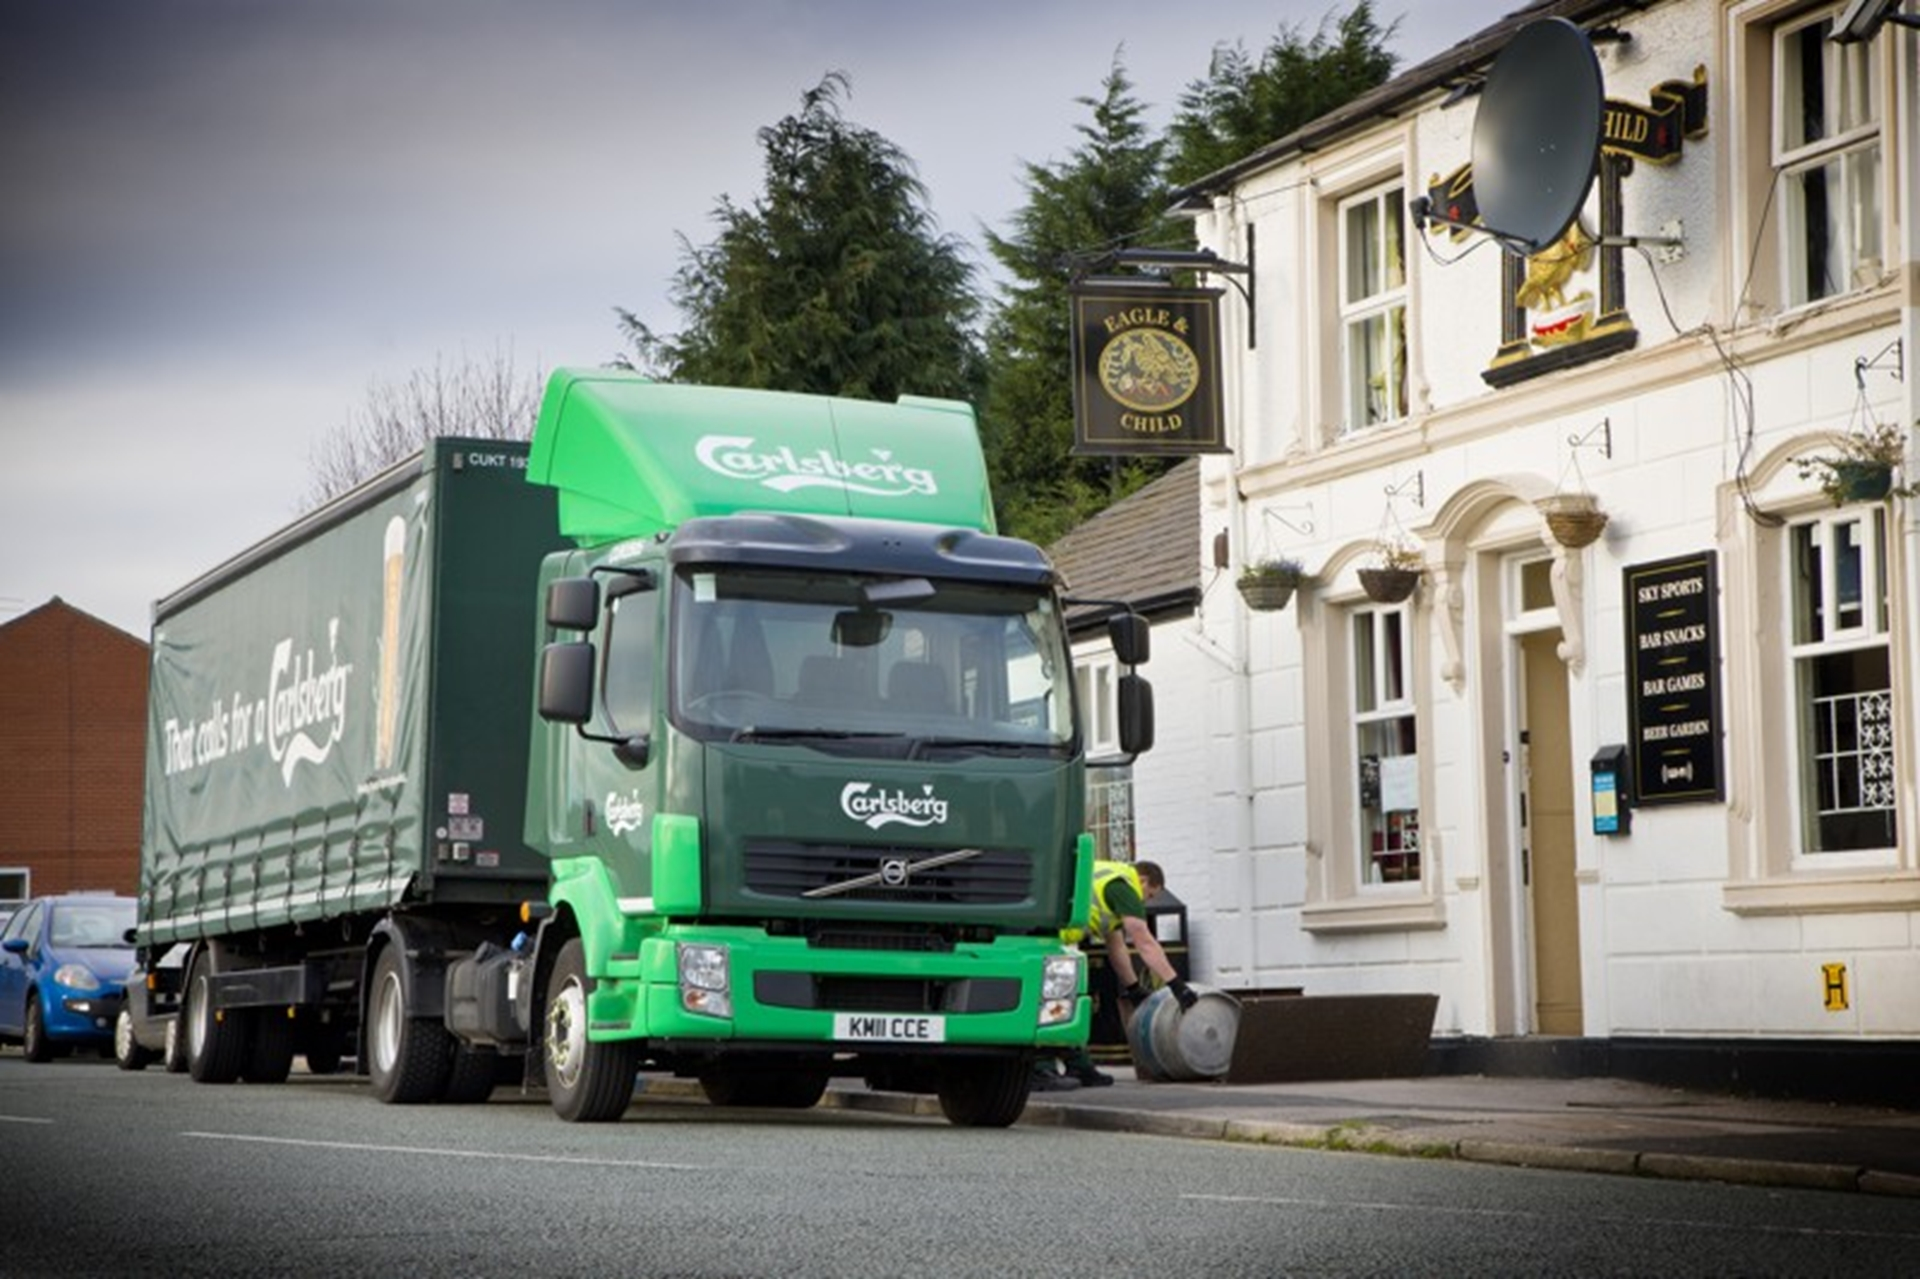 16 new Volvo vehicles entered service with Carlsberg UK Ltd.